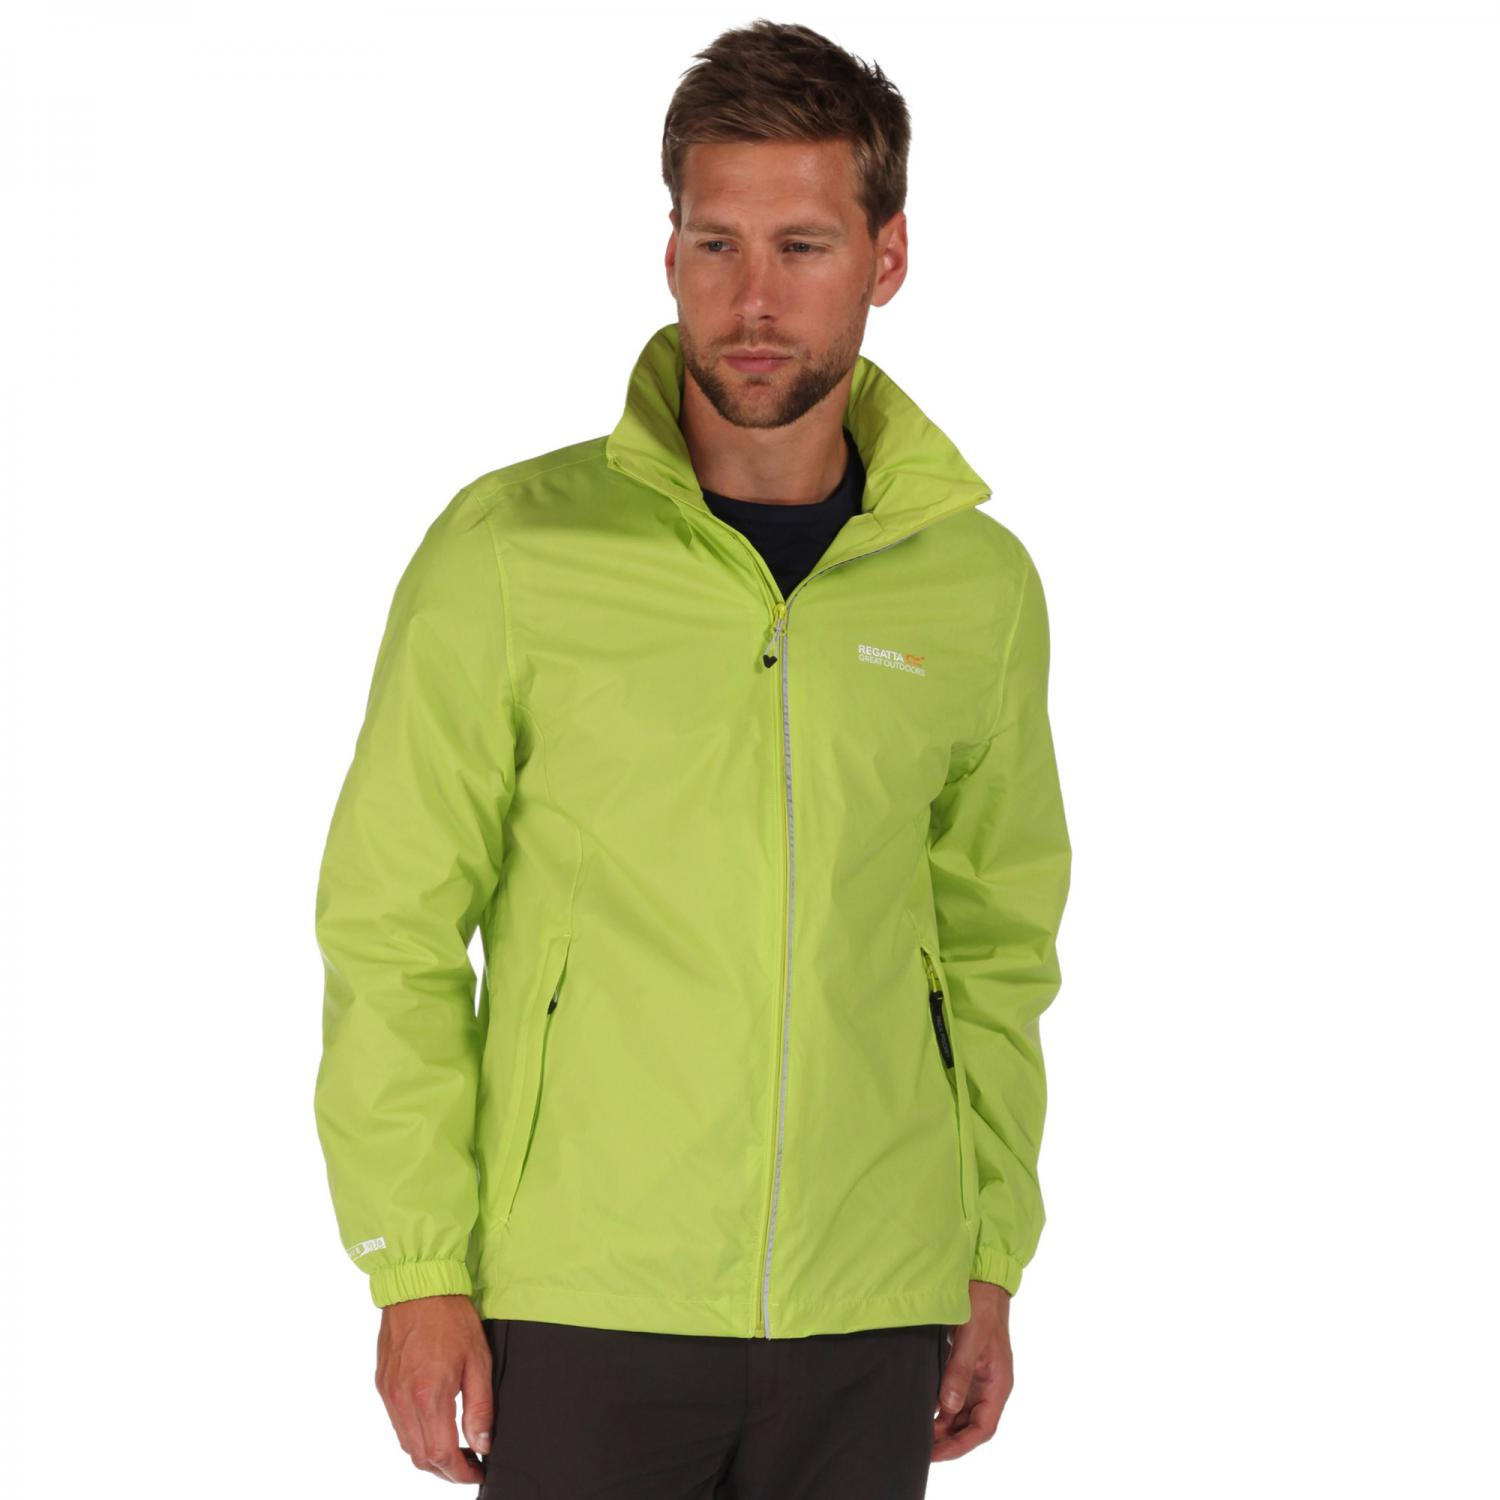 Lyle III Jacket Lime Zest